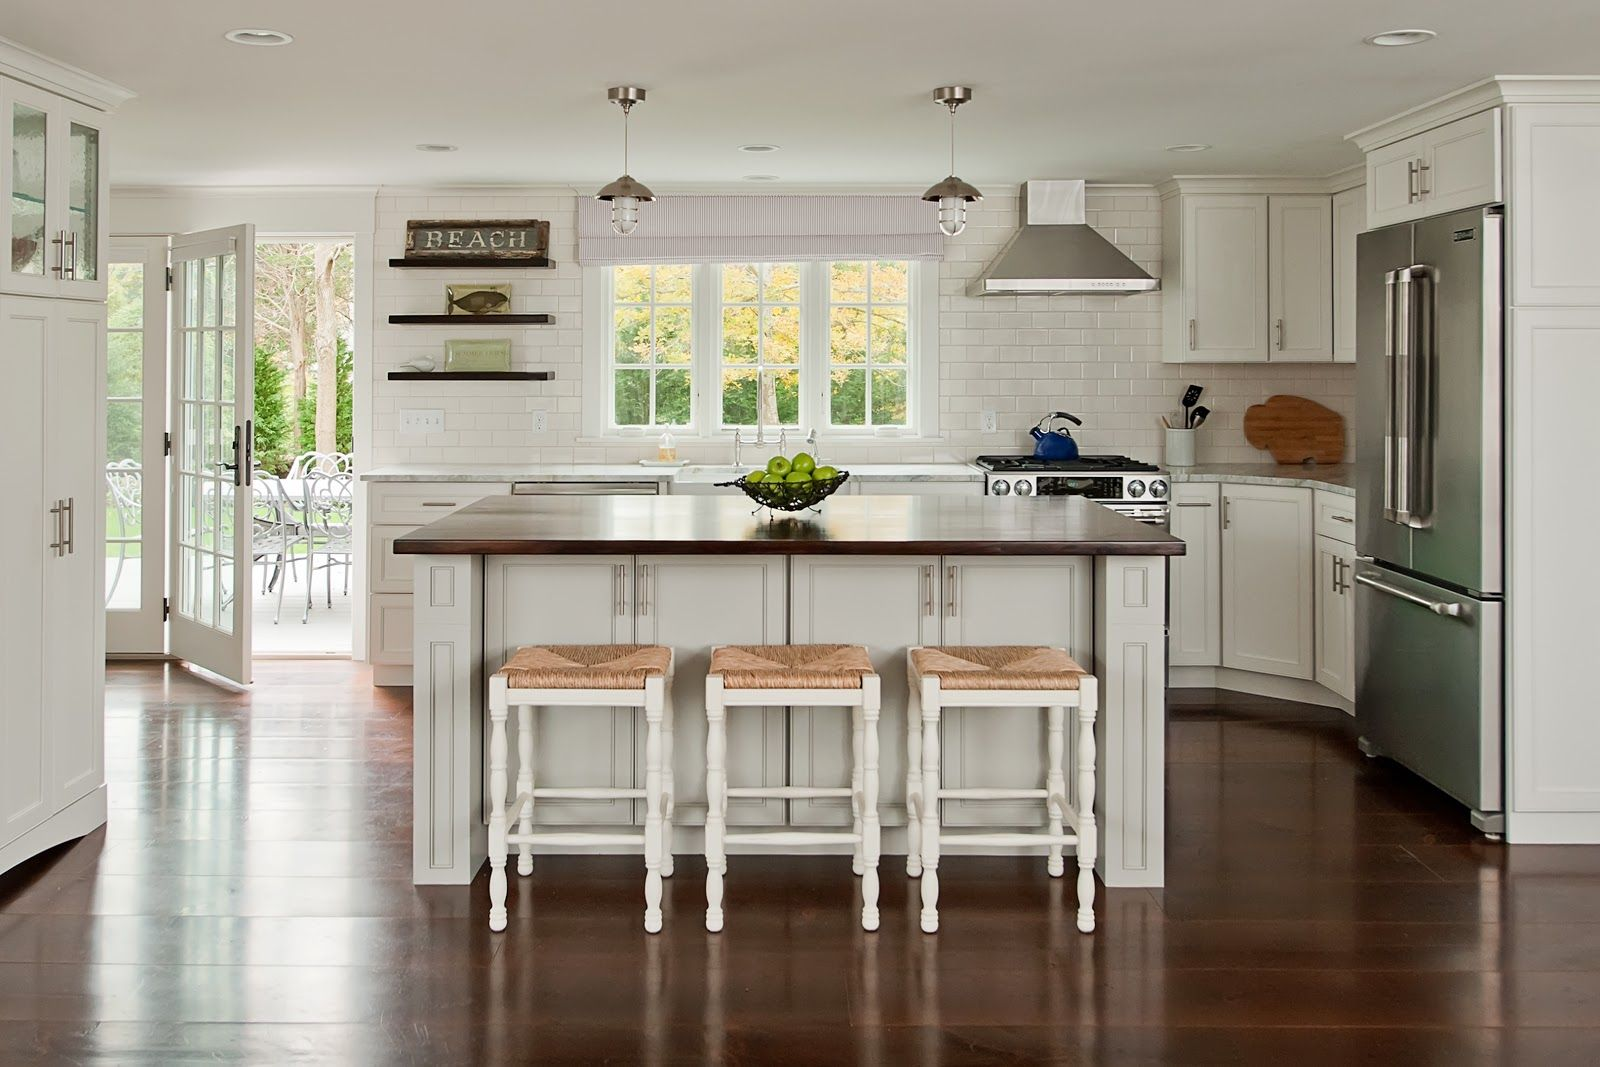 Genial Small Cape Cod Kitchen Ideas | White Can Be Very Hot! Sprinkle In A Color